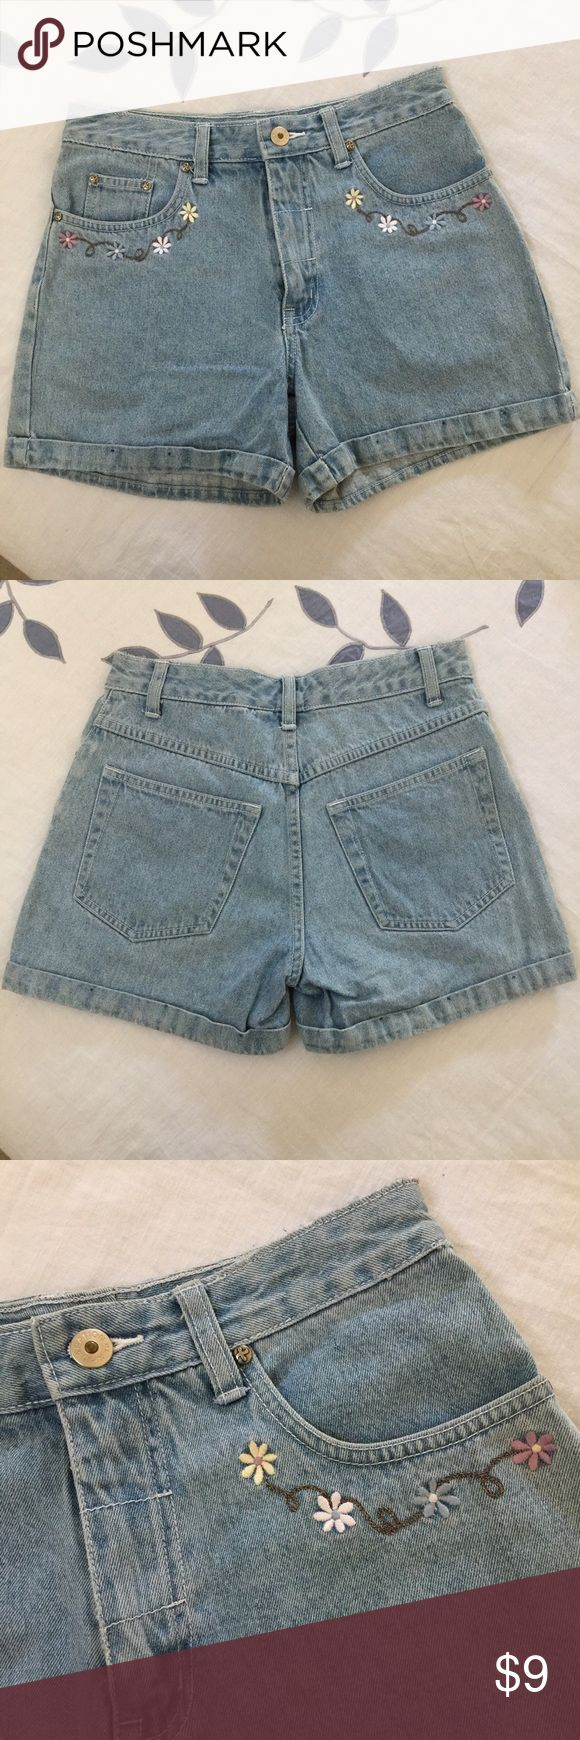 NWOT denim shorts with floral embroidery NWOT juniors shorts in a light vintage-blue denim color. Comes with adorable floral stitching under the pockets. Size 3 Xhilaration Shorts